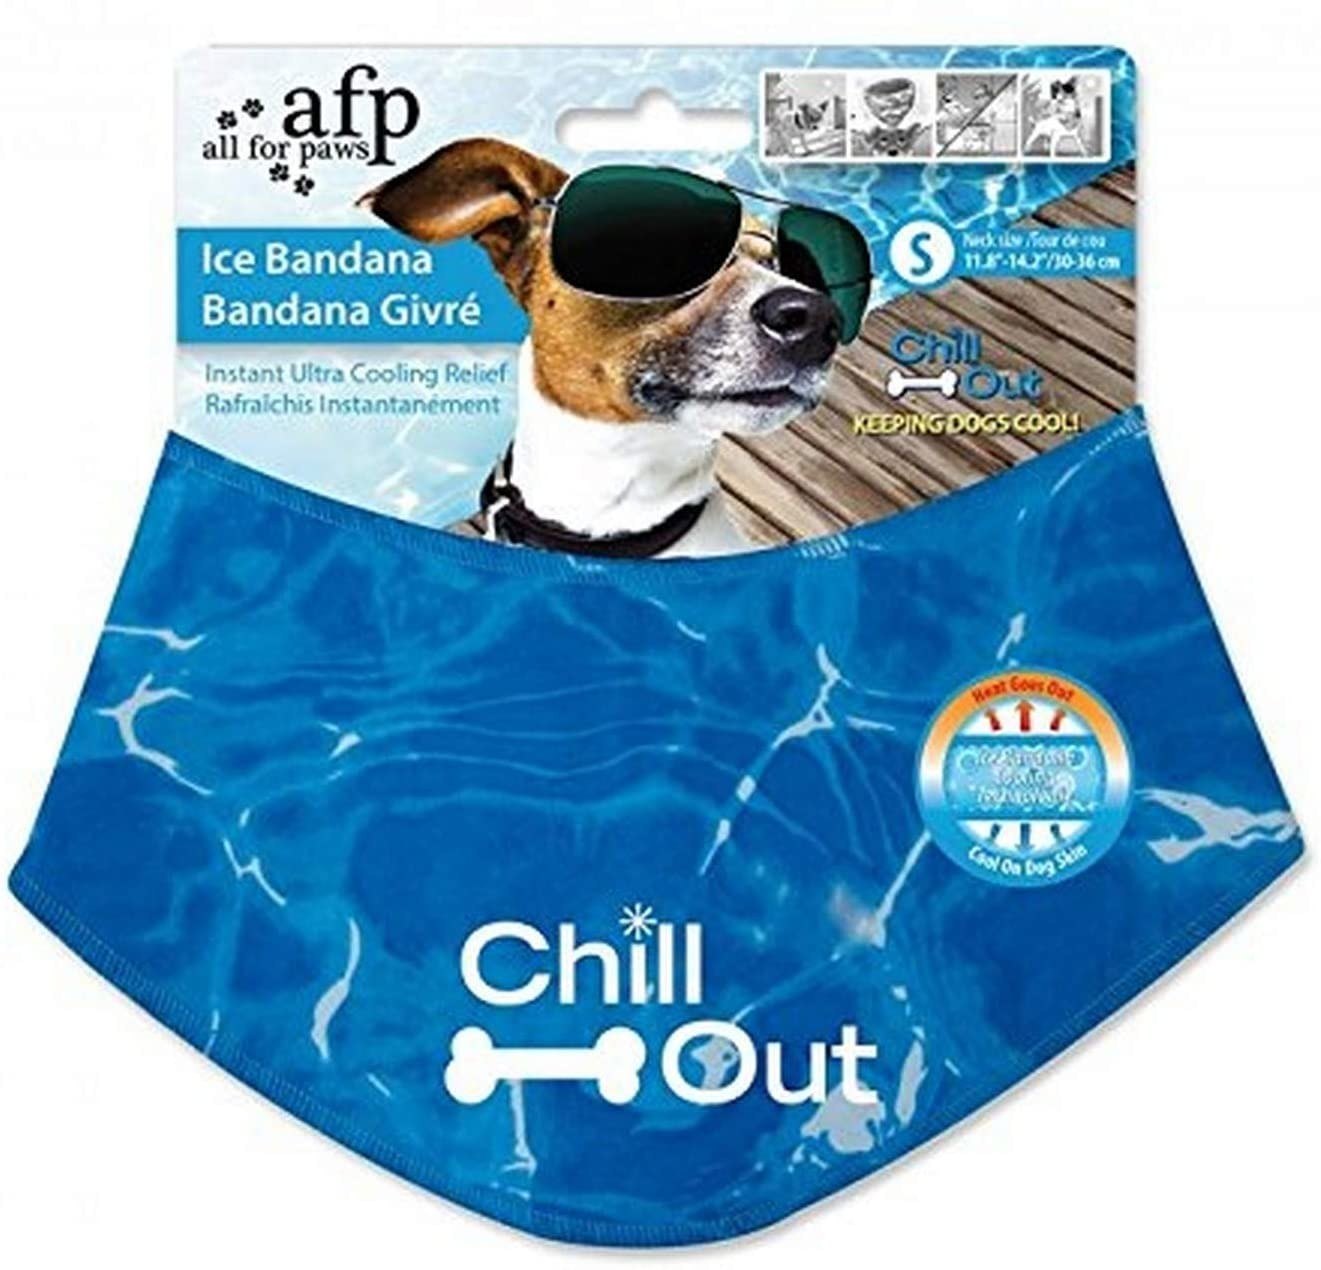 An ice bandana in its packaging